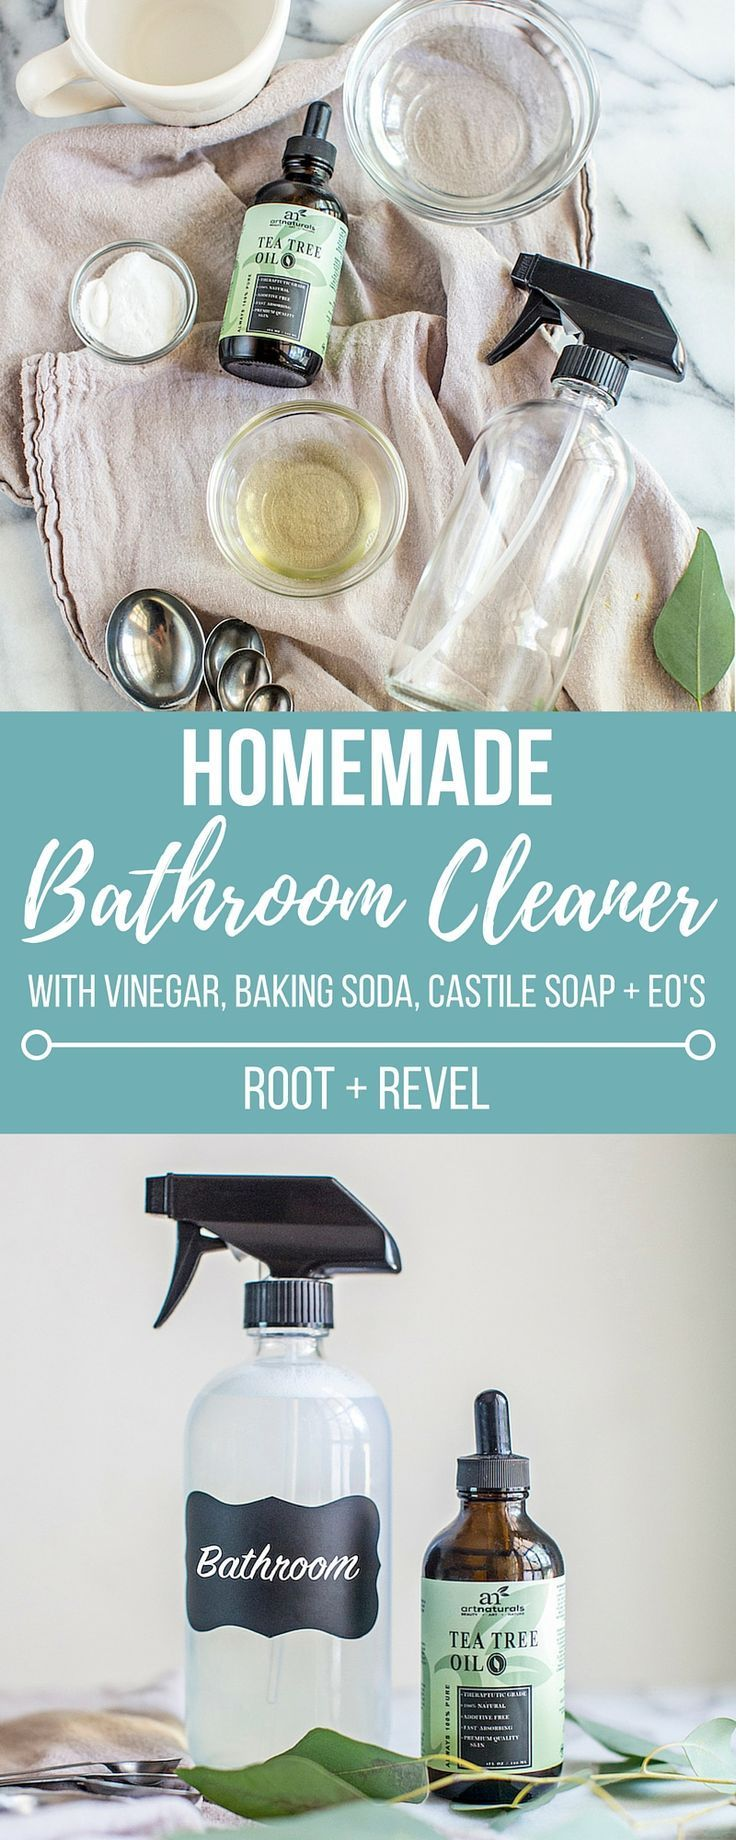 homemade bathroom cleaner recipe tips cleaning pinterest homemade bathroom cleaner natural bathroom and bathroom cleaning - Homemade Bathroom Cleaner